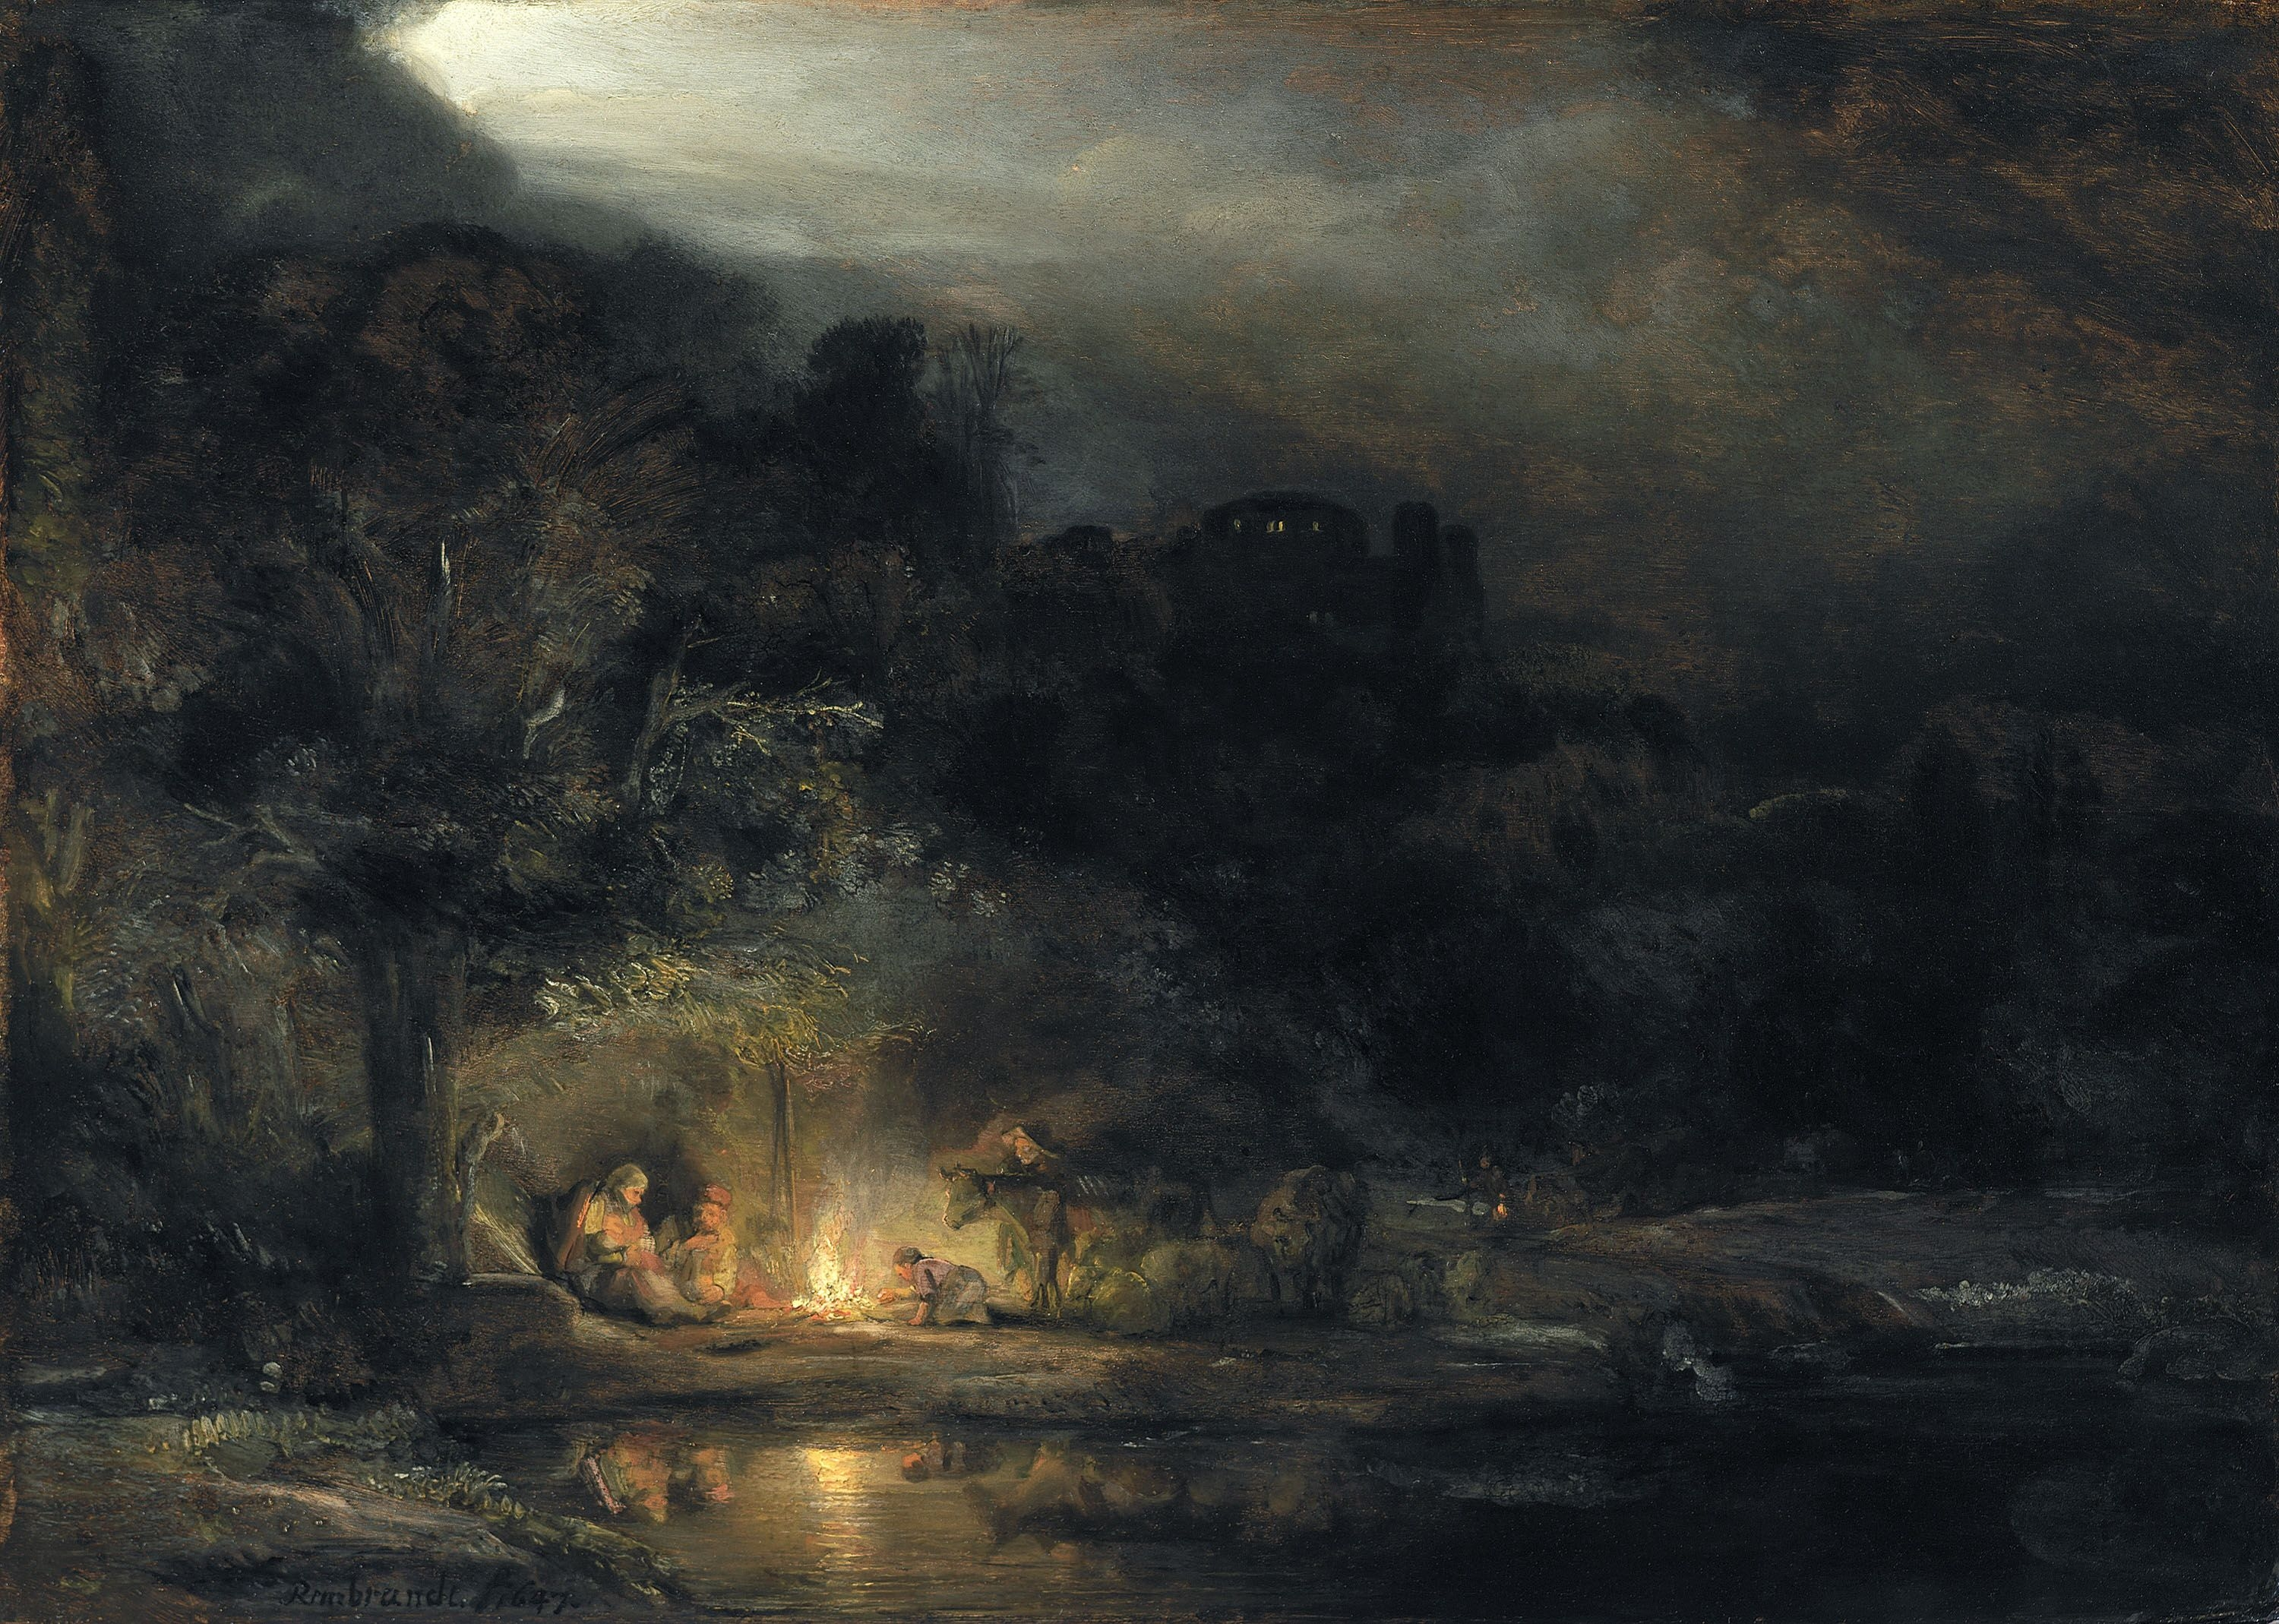 Rembrandt van Rijn, Landscape with the Rest on the Flight into Egypt